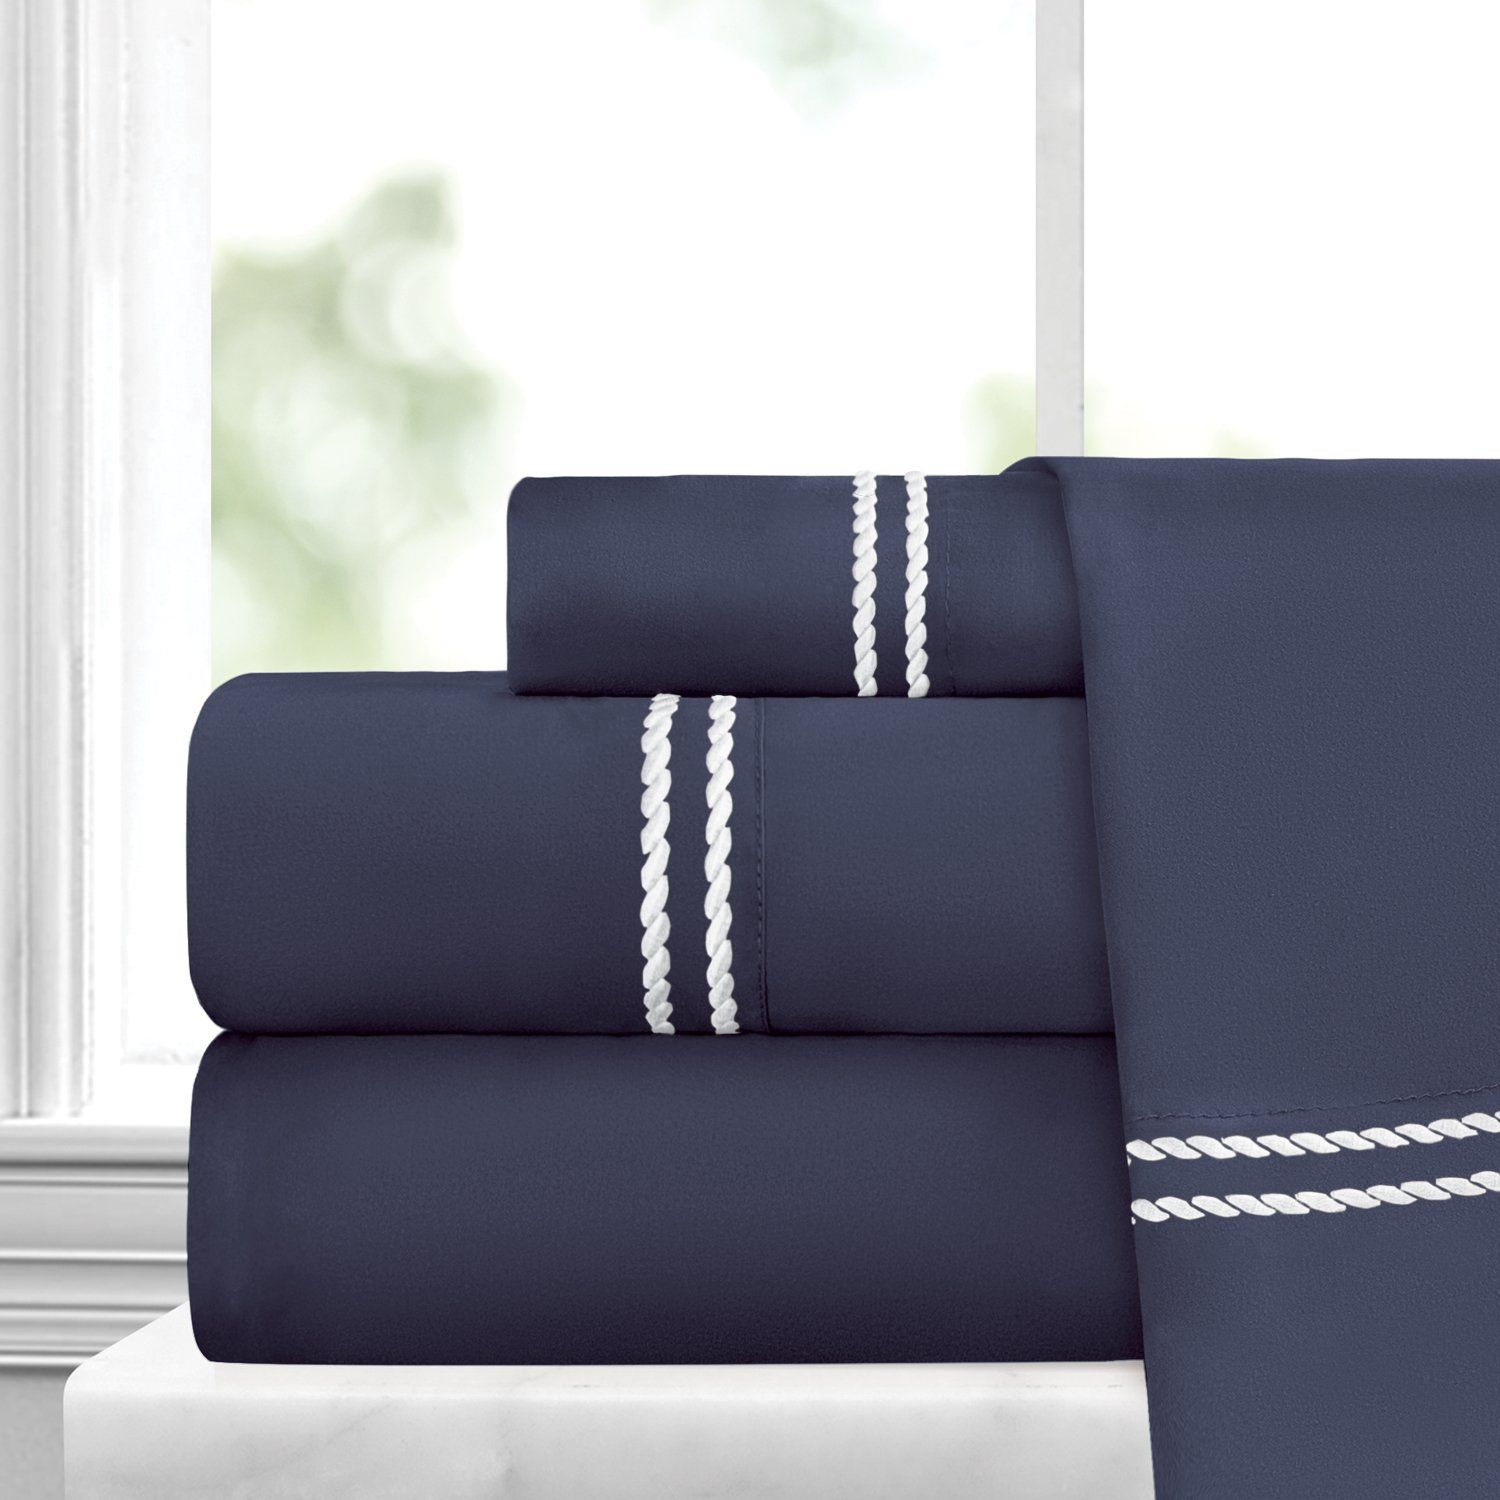 Restoration Collection 1500 Gusseted Gel Fiber Pillow 2 Pack by ienjoy Home